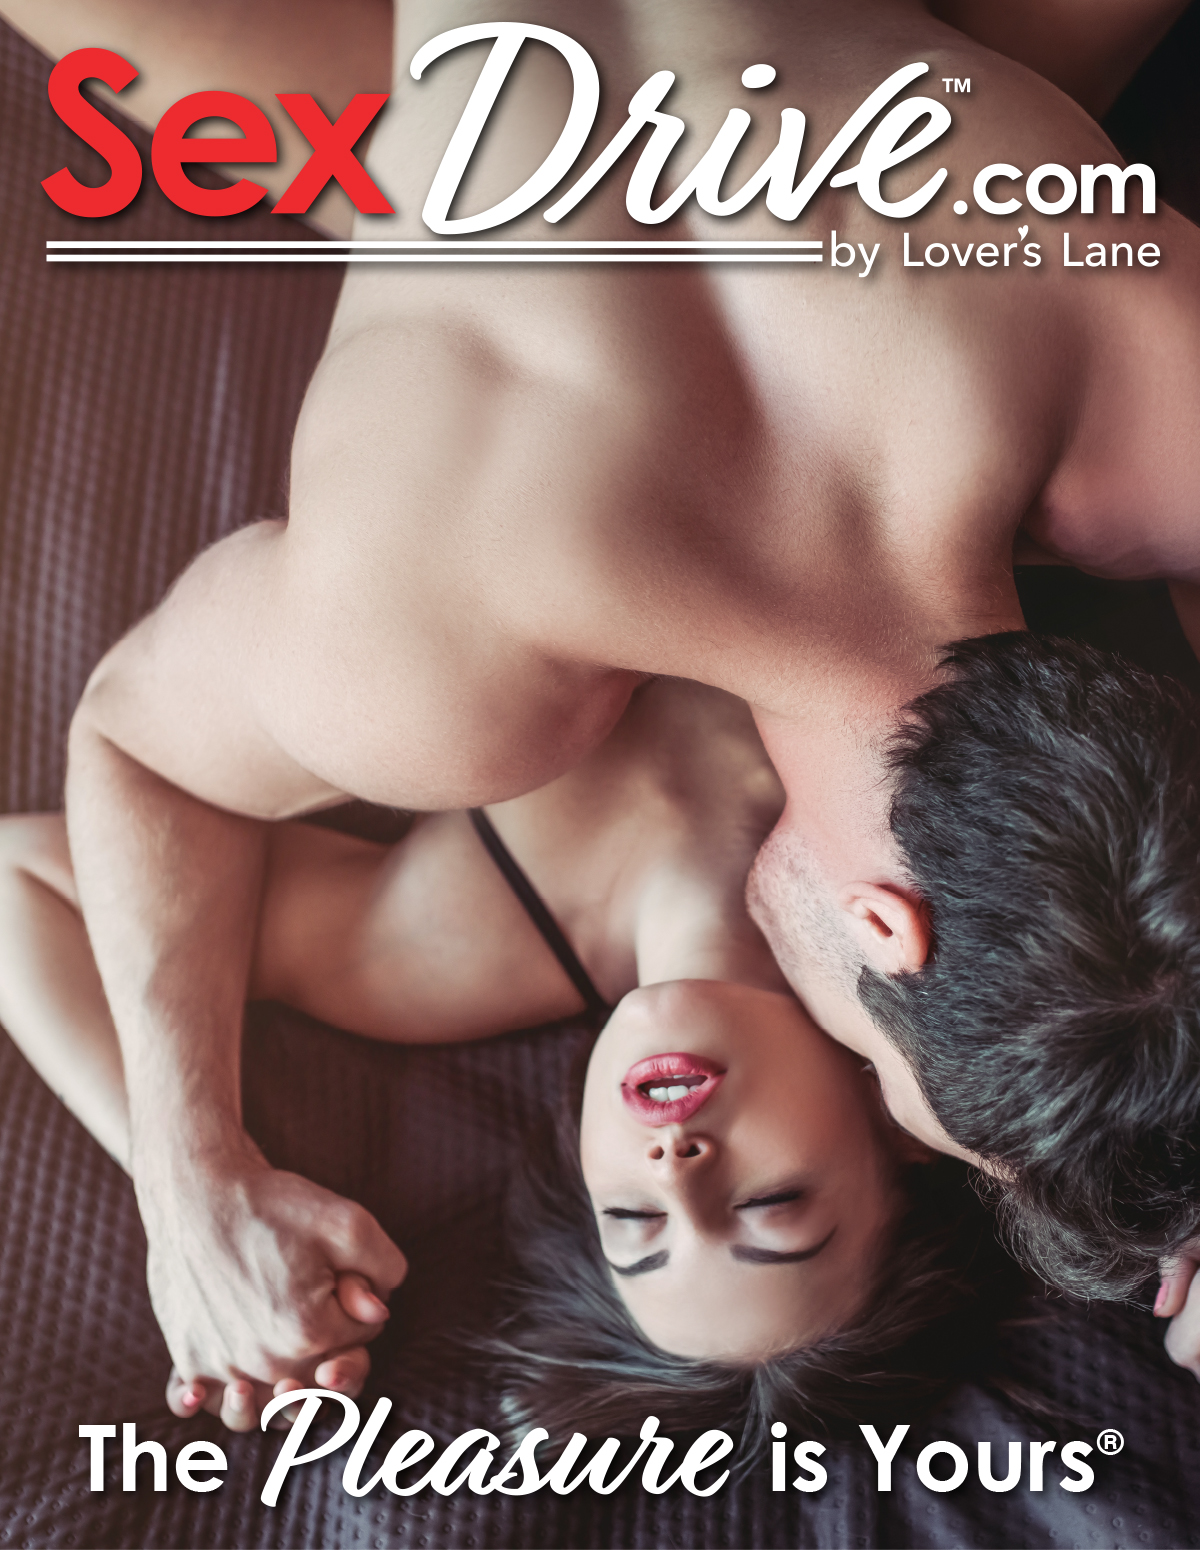 The Pleasure is Yours - SexDrive.com